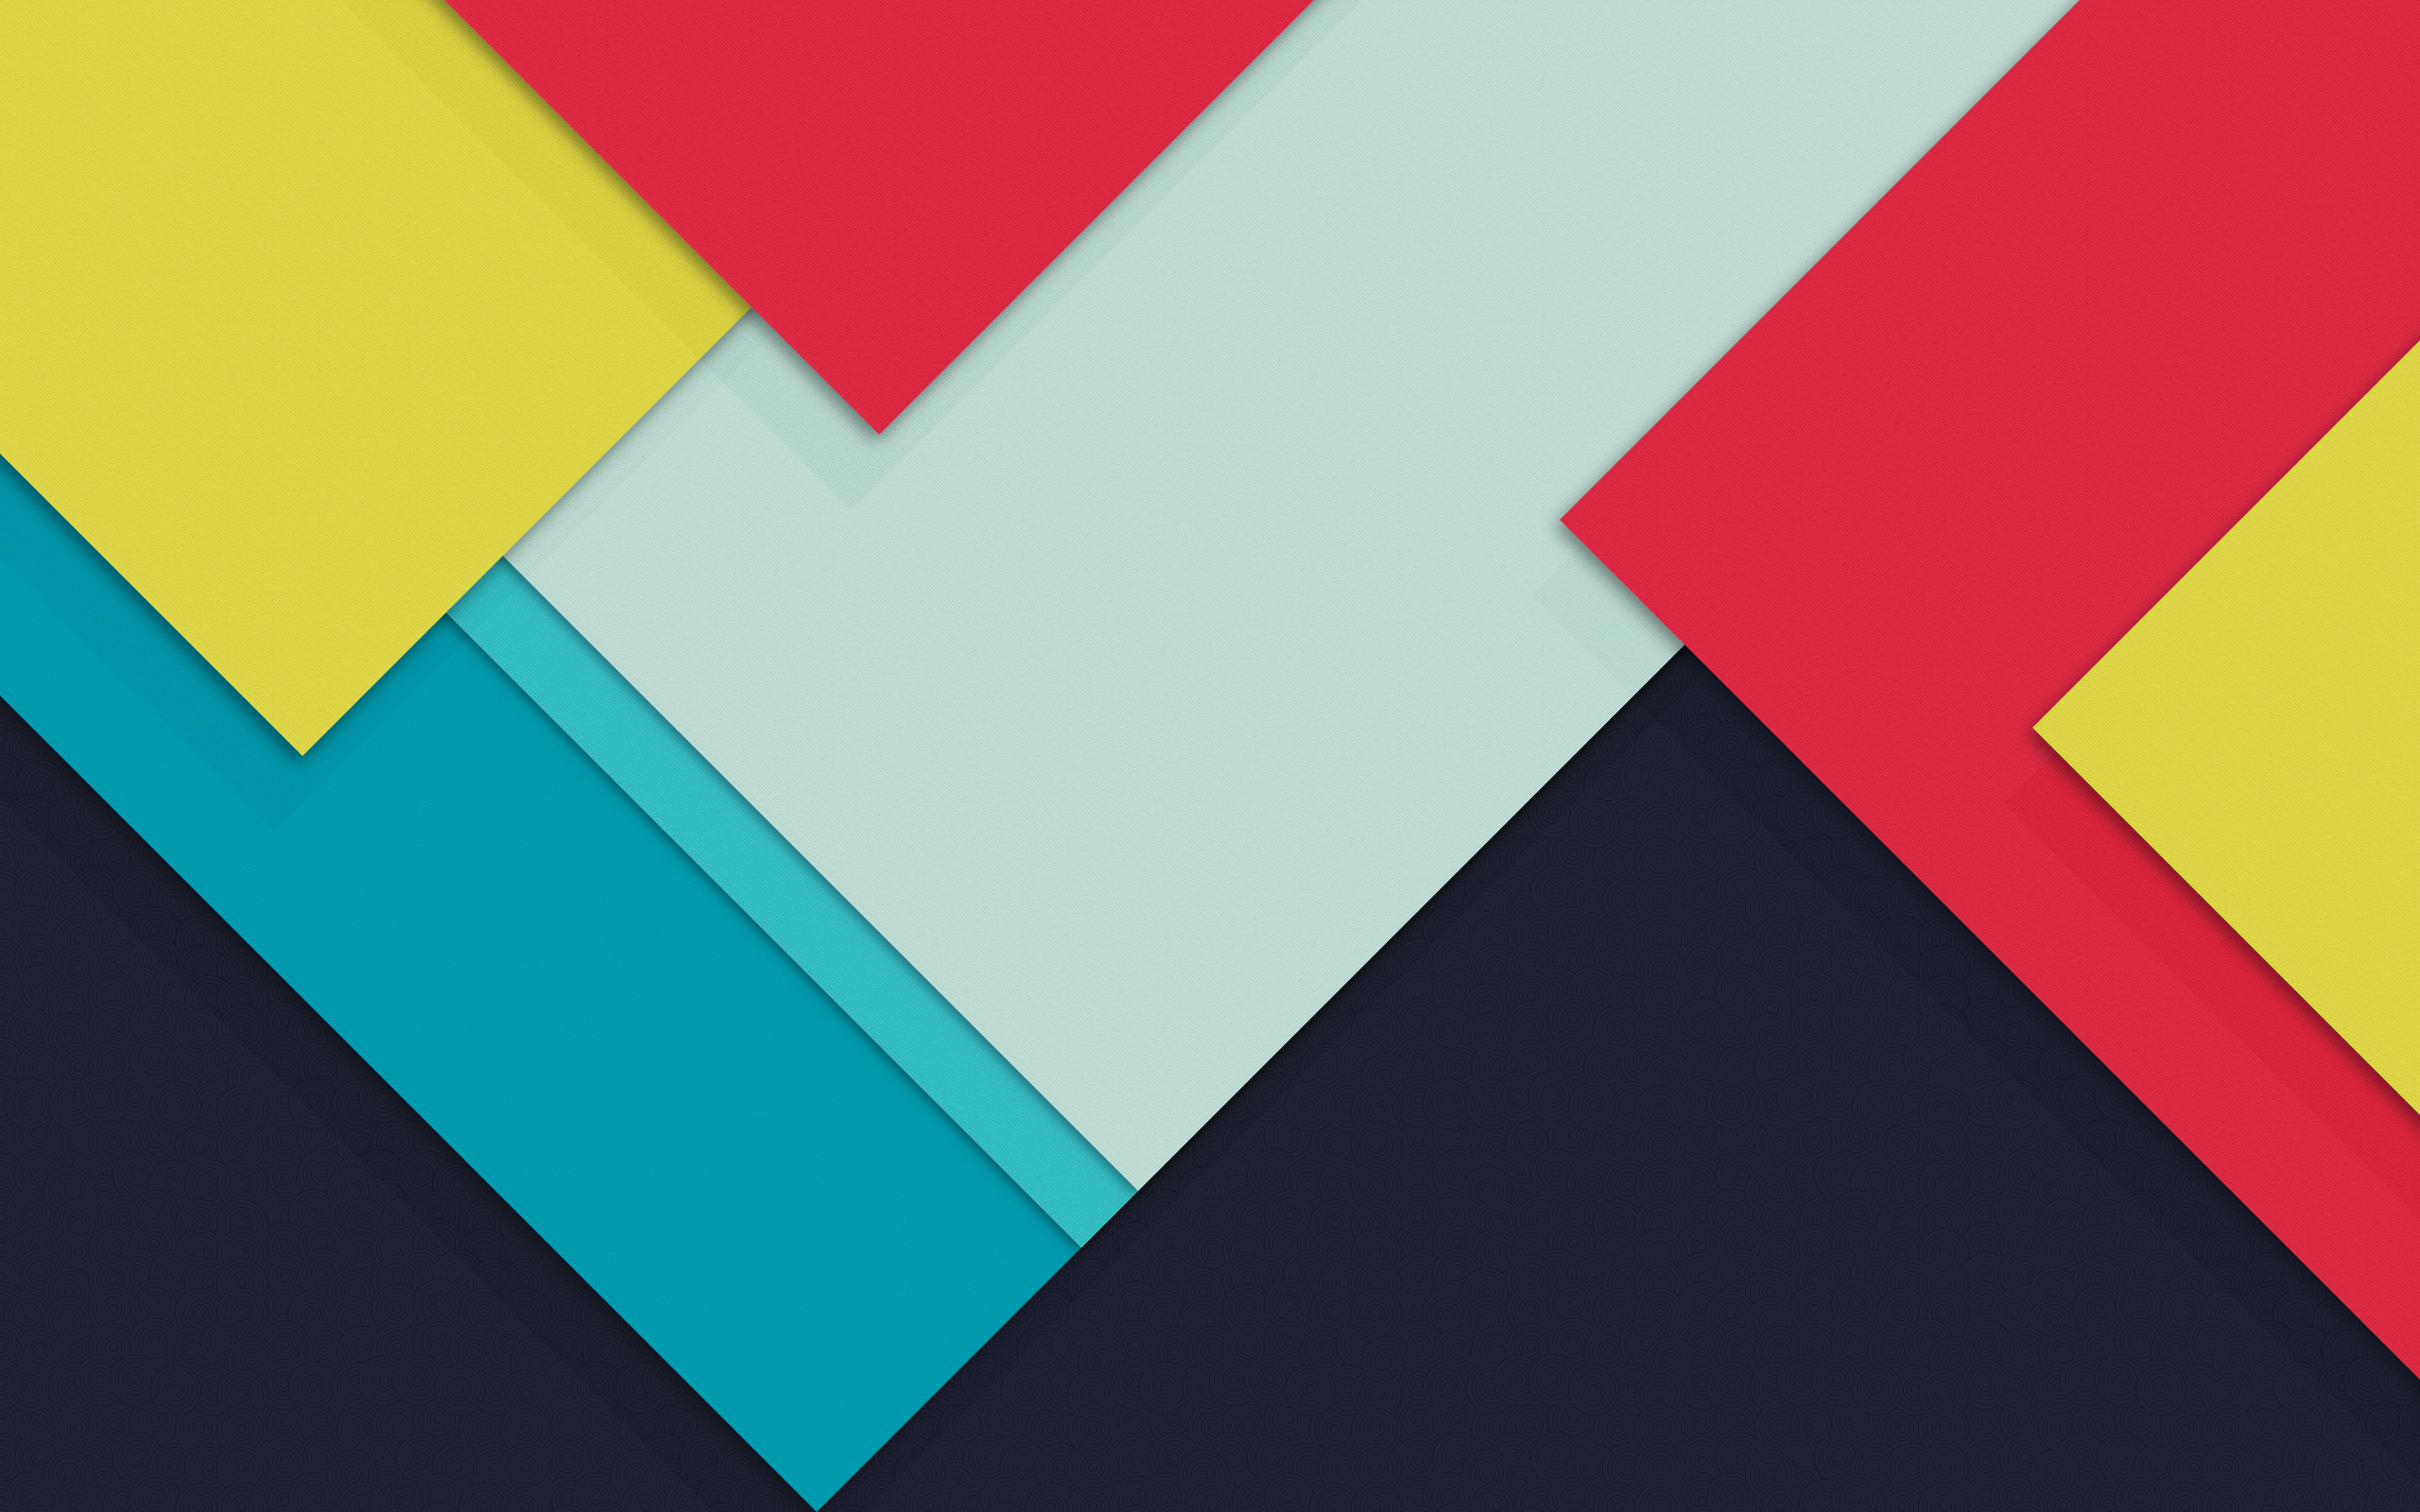 Android l wallpaper by taurosrmk on deviantart for Material design wallpaper 4k